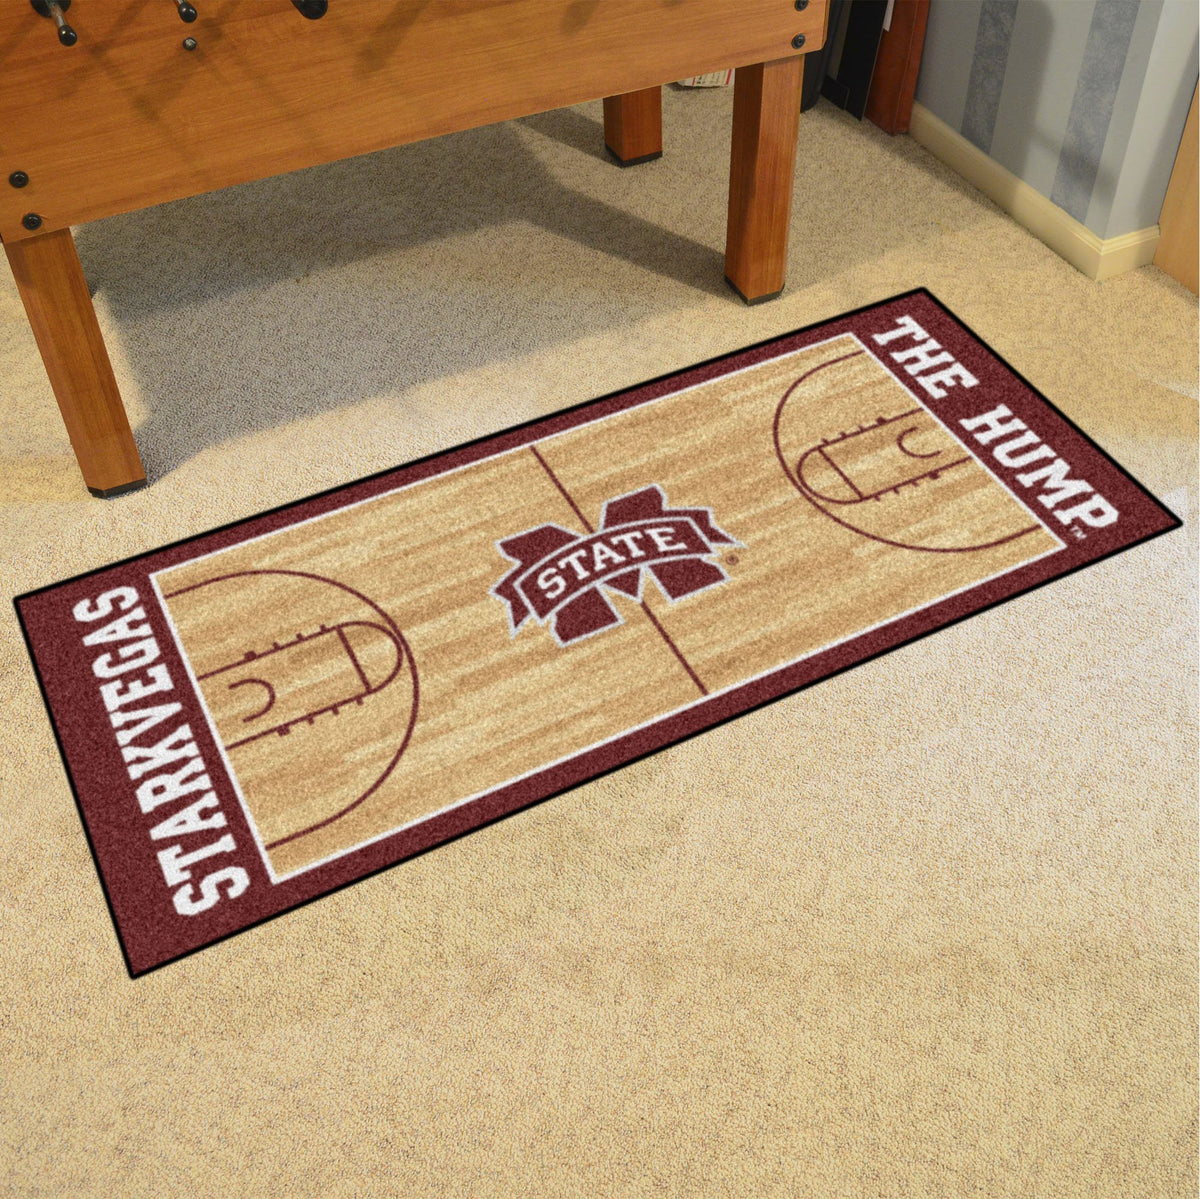 Collegiate - NCAA Basketball Runner Collegiate Mats, Rectangular Mats, NCAA Basketball Runner, Collegiate, Home Fan Mats Mississippi State